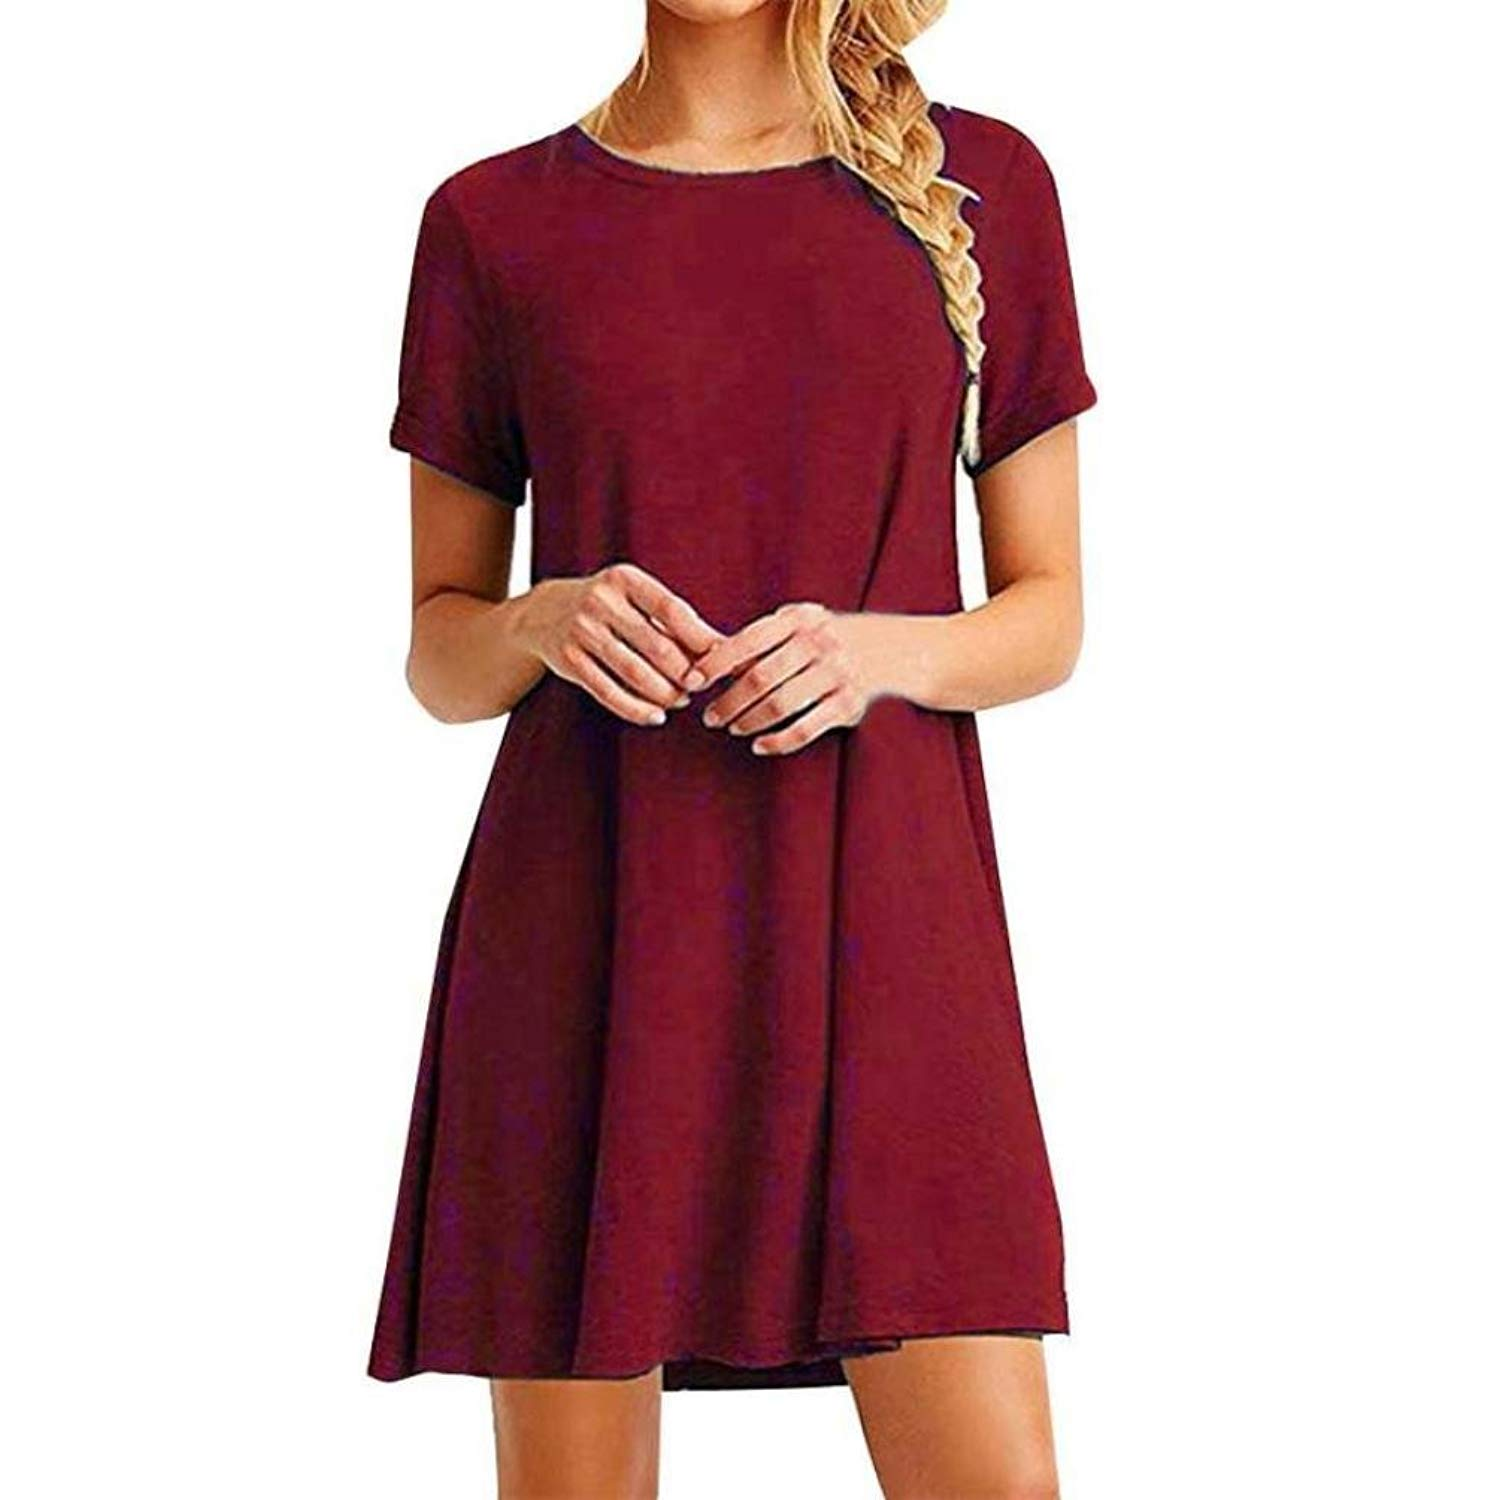 BCDshop Women Casual T Shirt Tops Dress Short Sleeve Ladies Solid Color Summer Tunic